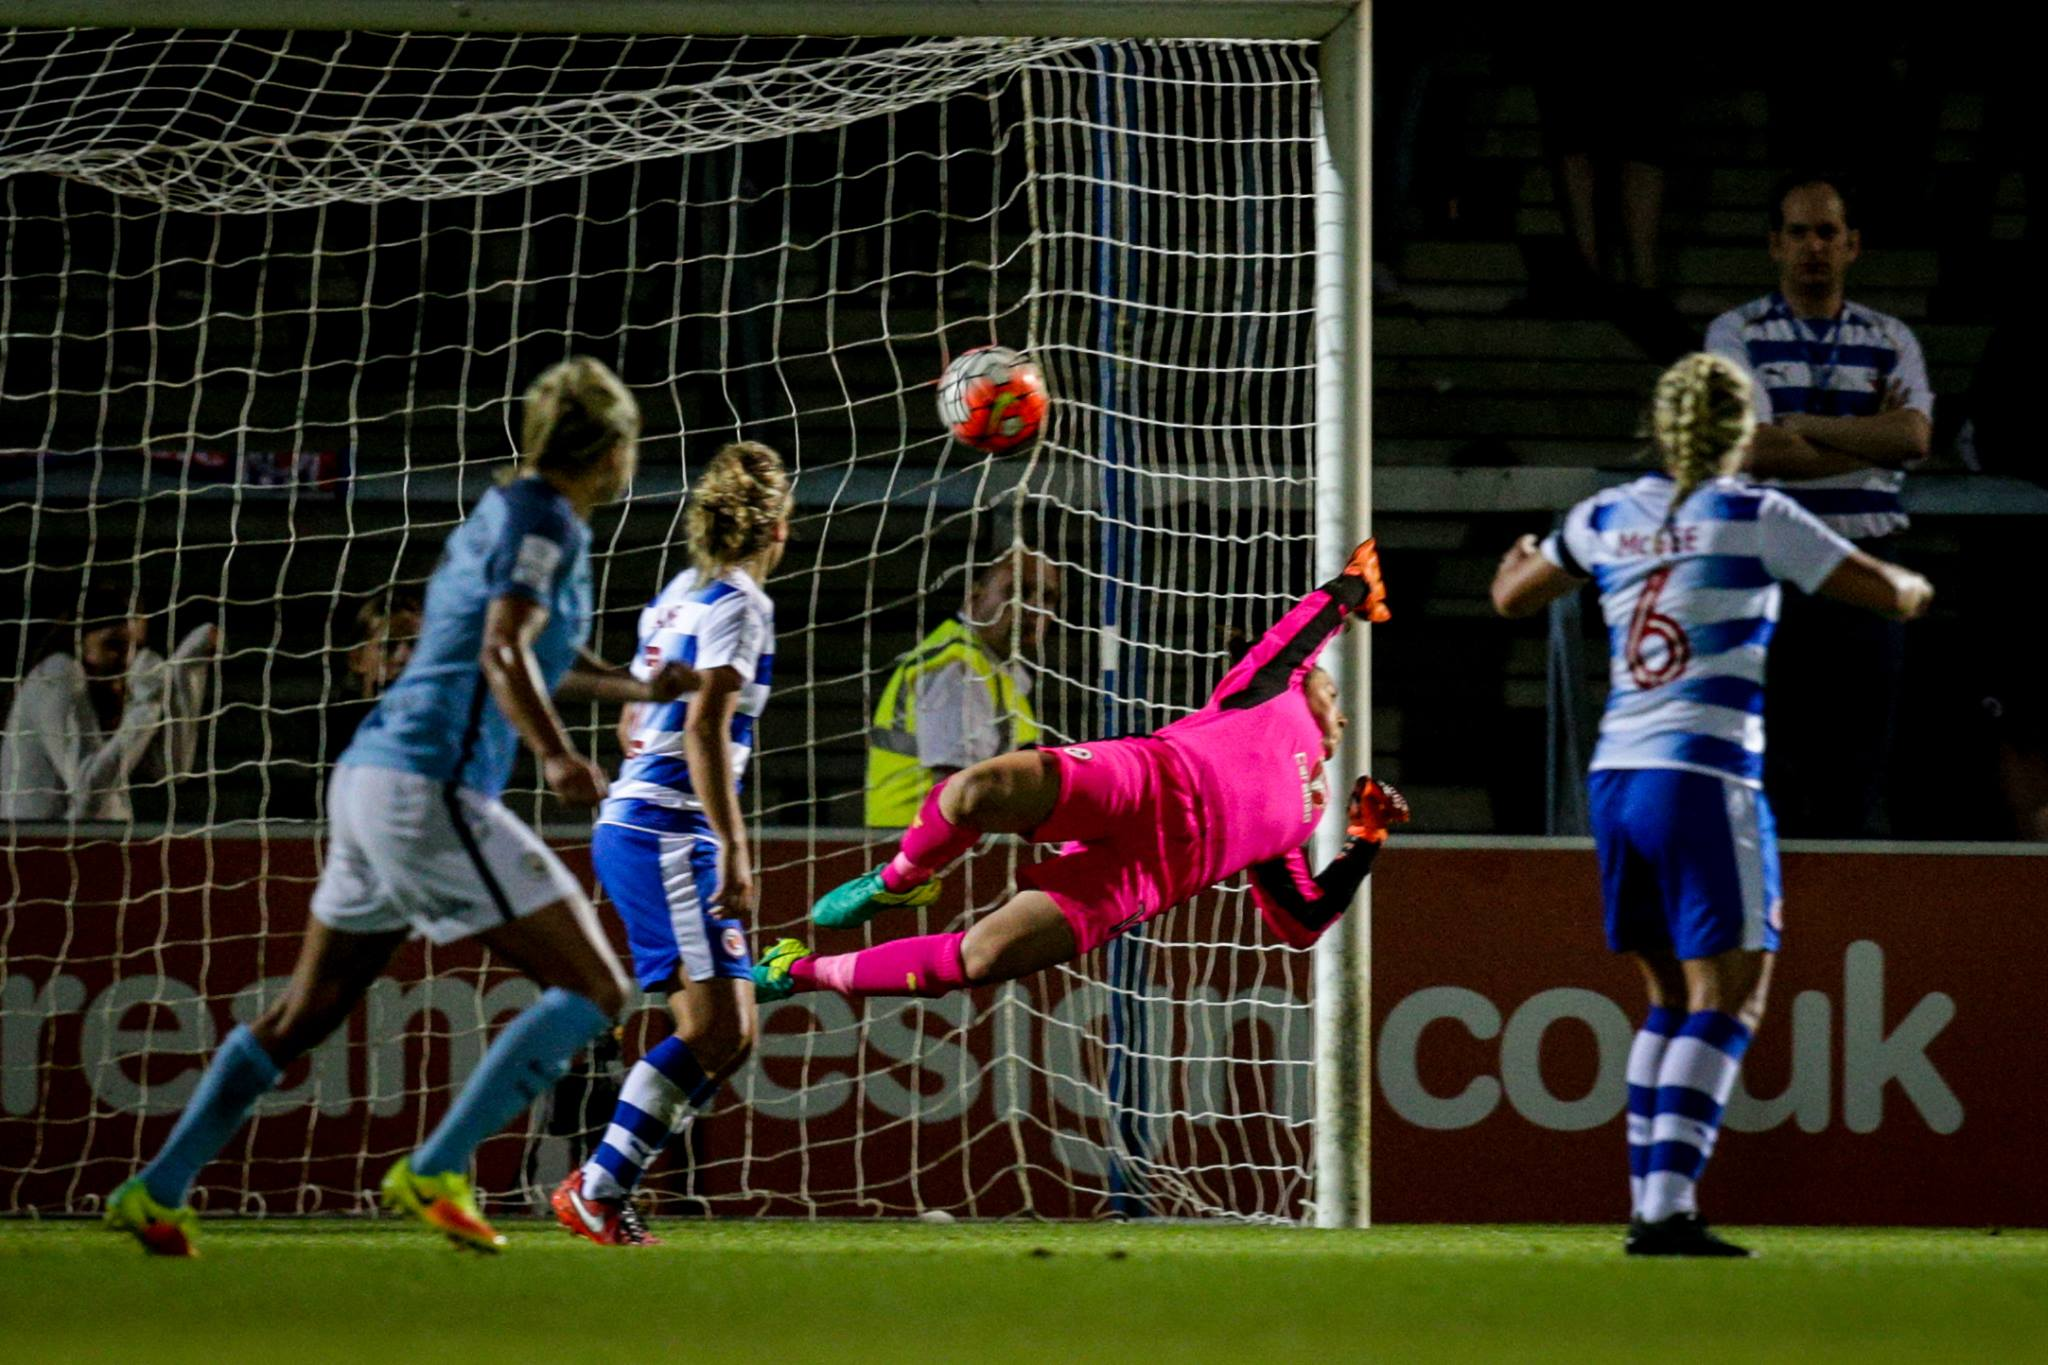 STRIKE! Watch Toni Duggan's strike that sunk Reading FC Women